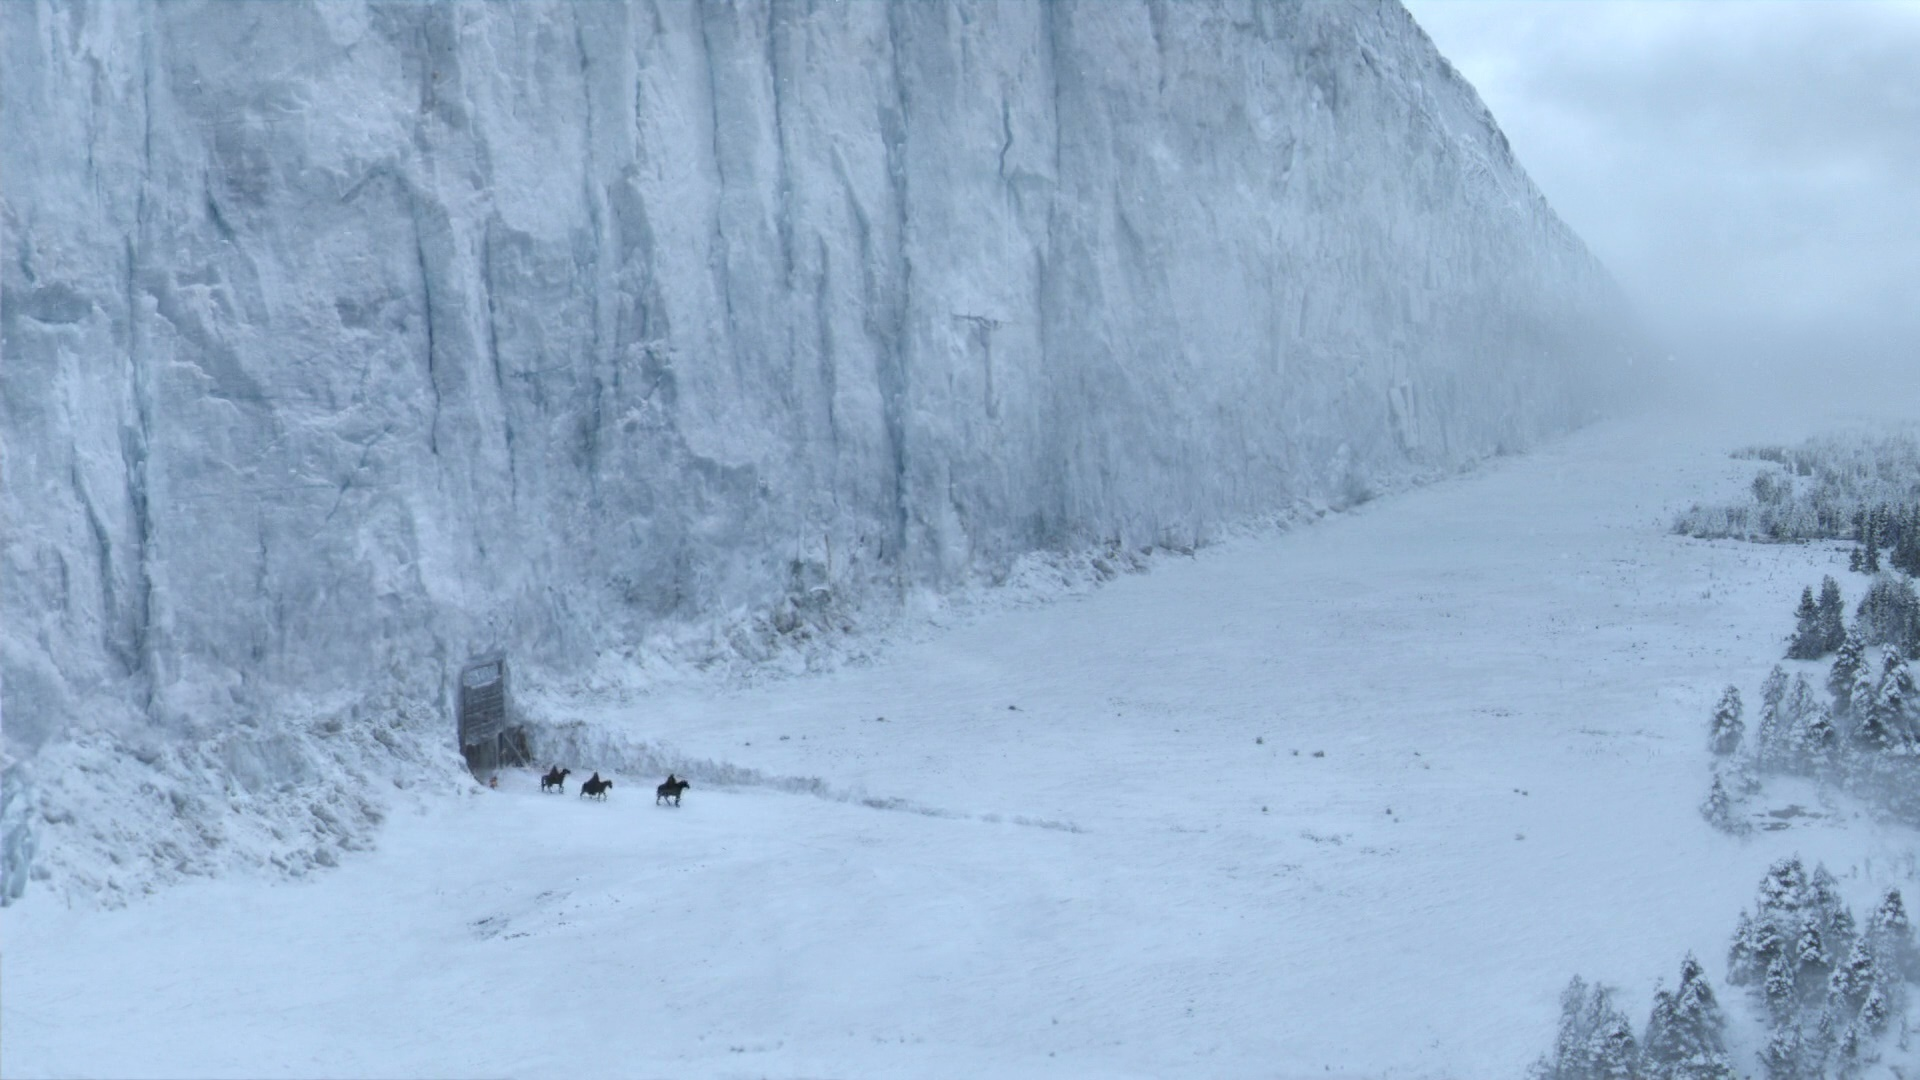 ¿Es posible construir el muro de hielo de Game of Thrones?